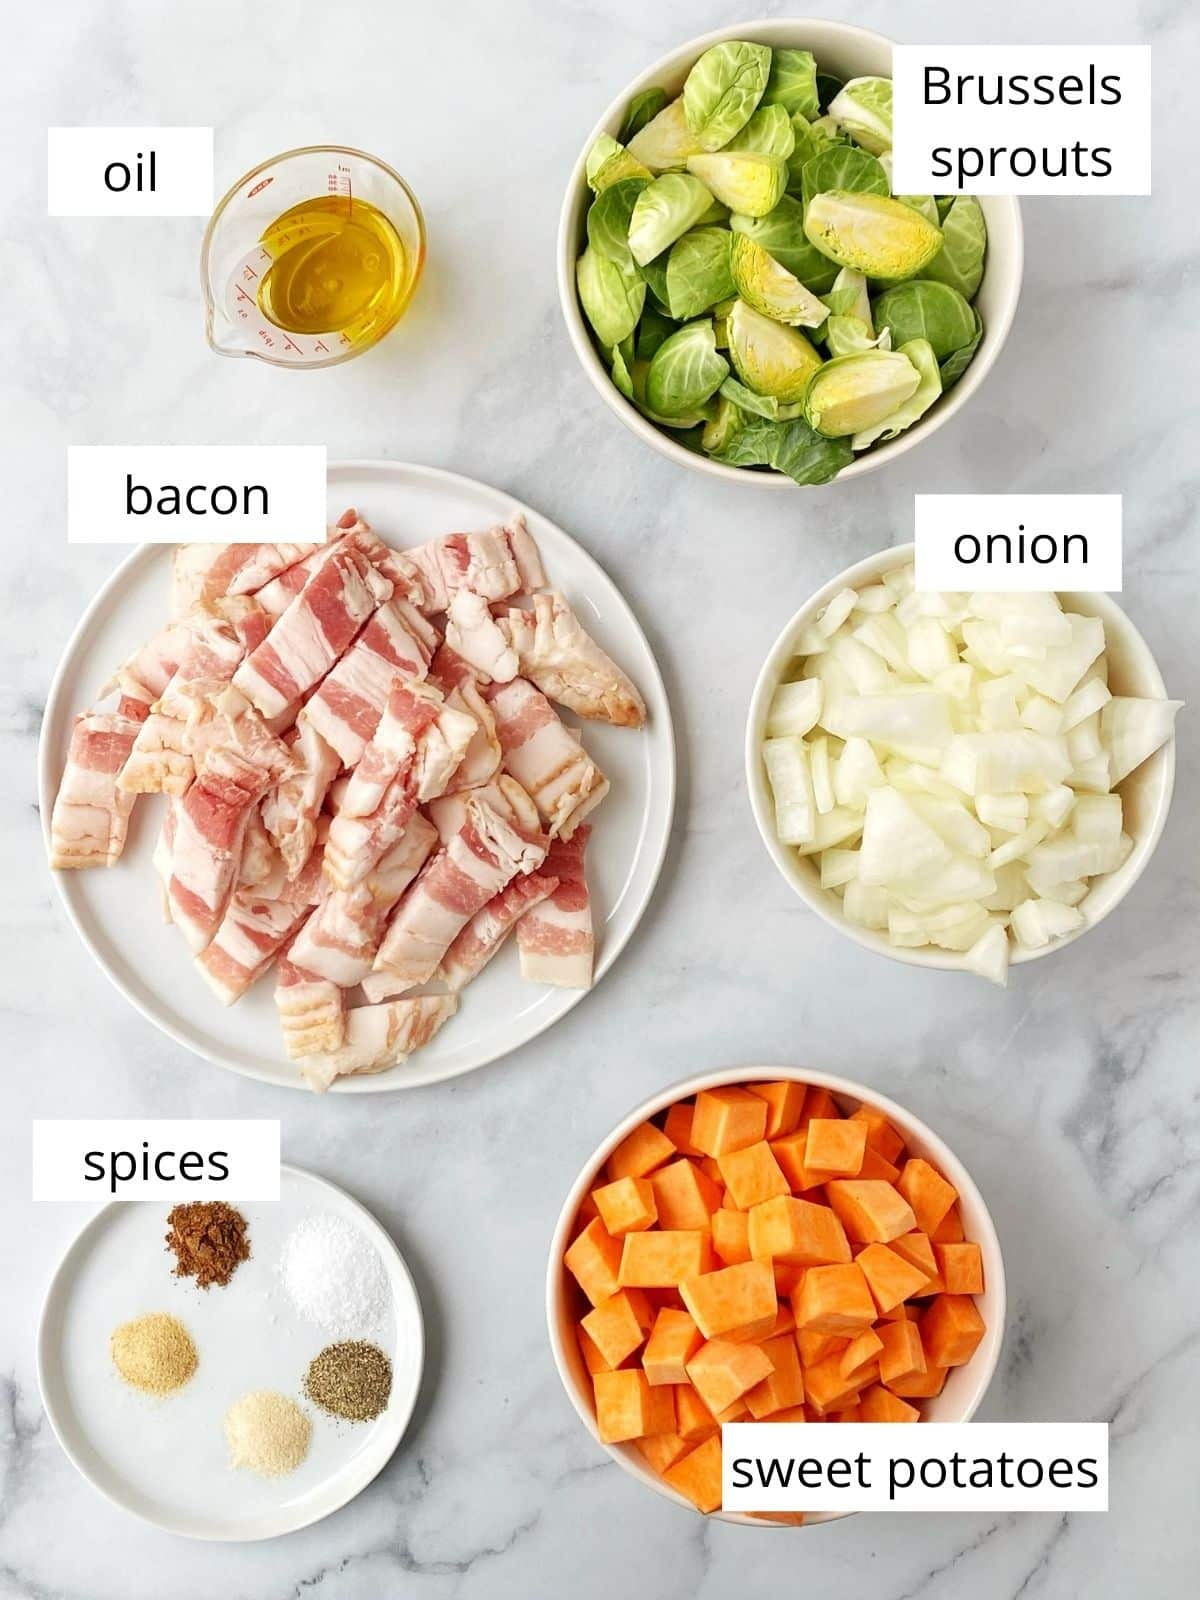 ingredients - Brussels, potato, onion, bacon, spices, and oil